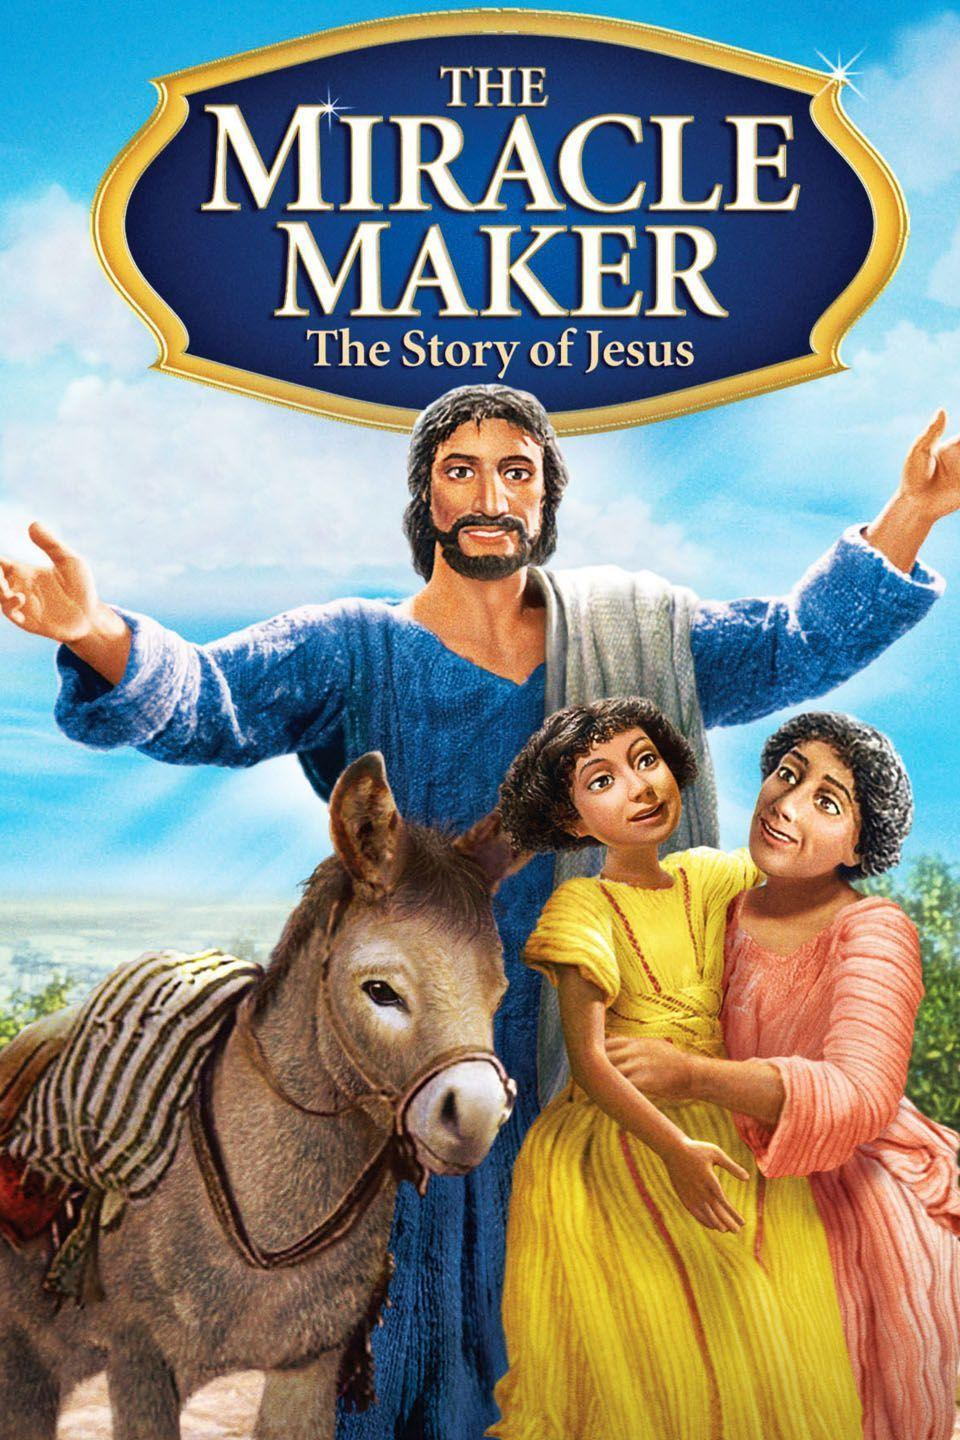 """<p>This stop-motion-animated movie tells the story of the life of Jesus Christ, as seen through the eyes of a terminally-ill child. </p><p><a href=""""https://www.youtube.com/watch?v=Vm_uHE1956I"""" rel=""""nofollow noopener"""" target=""""_blank"""" data-ylk=""""slk:STREAM NOW"""" class=""""link rapid-noclick-resp"""">STREAM NOW</a></p>"""